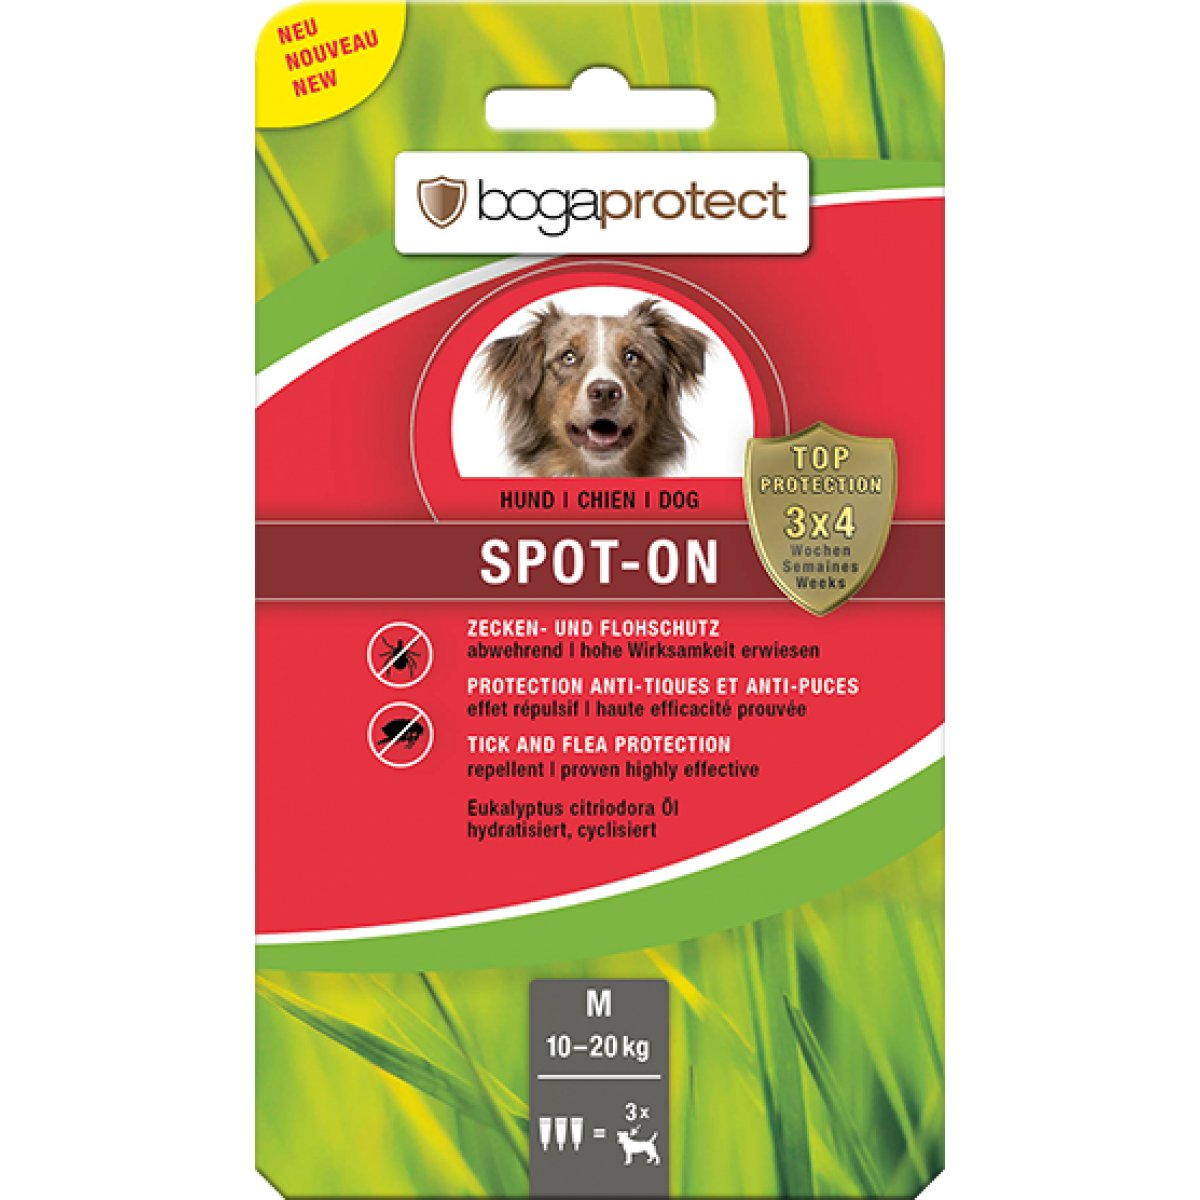 bogaprotect® SPOT-ON Hund M 3x2.2 ml